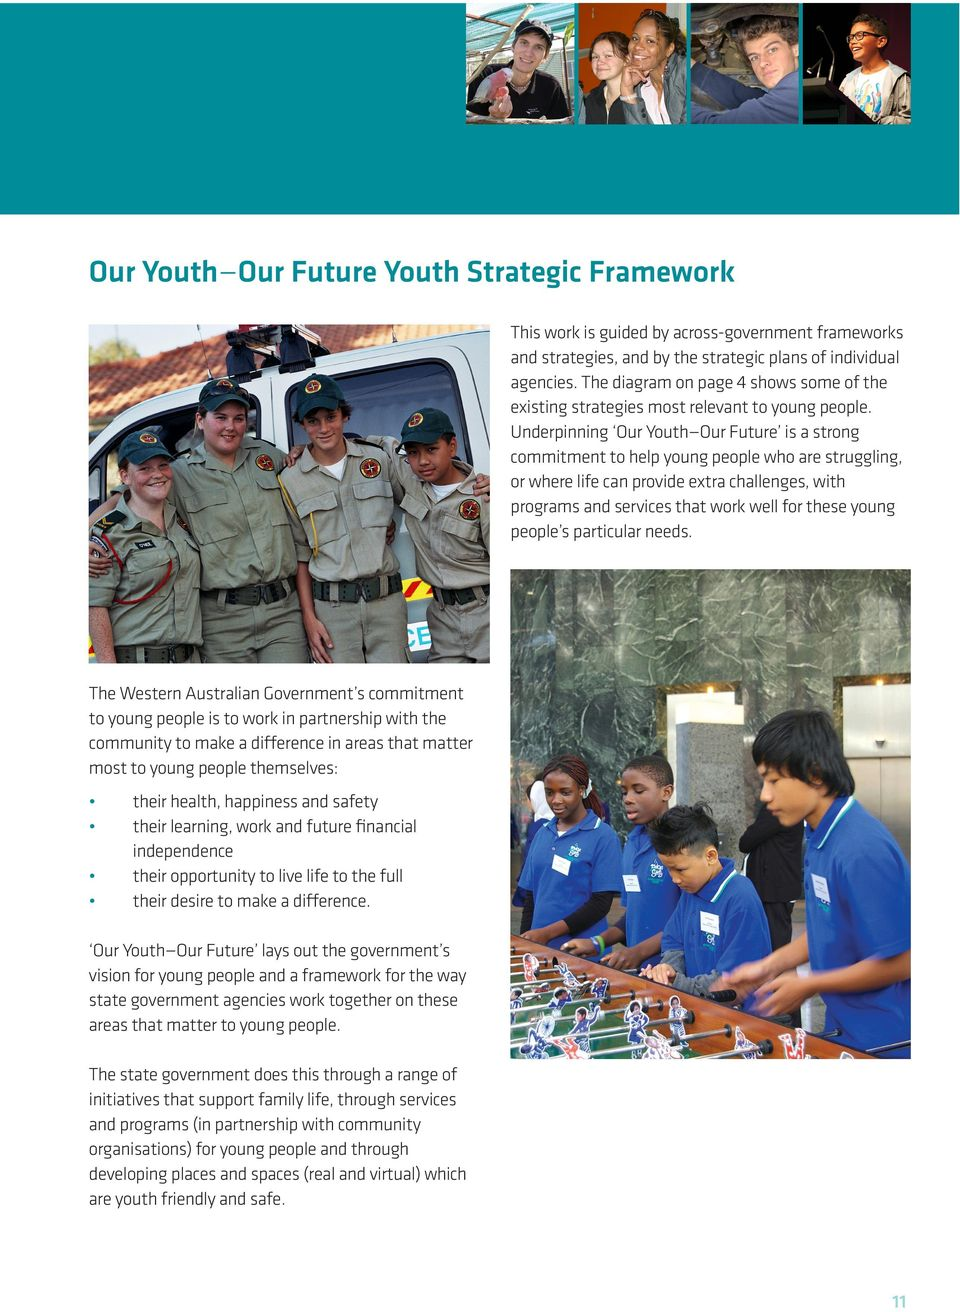 Underpinning Our Youth Our Future is a strong commitment to help young people who are struggling, or where life can provide extra challenges, with programs and services that work well for these young